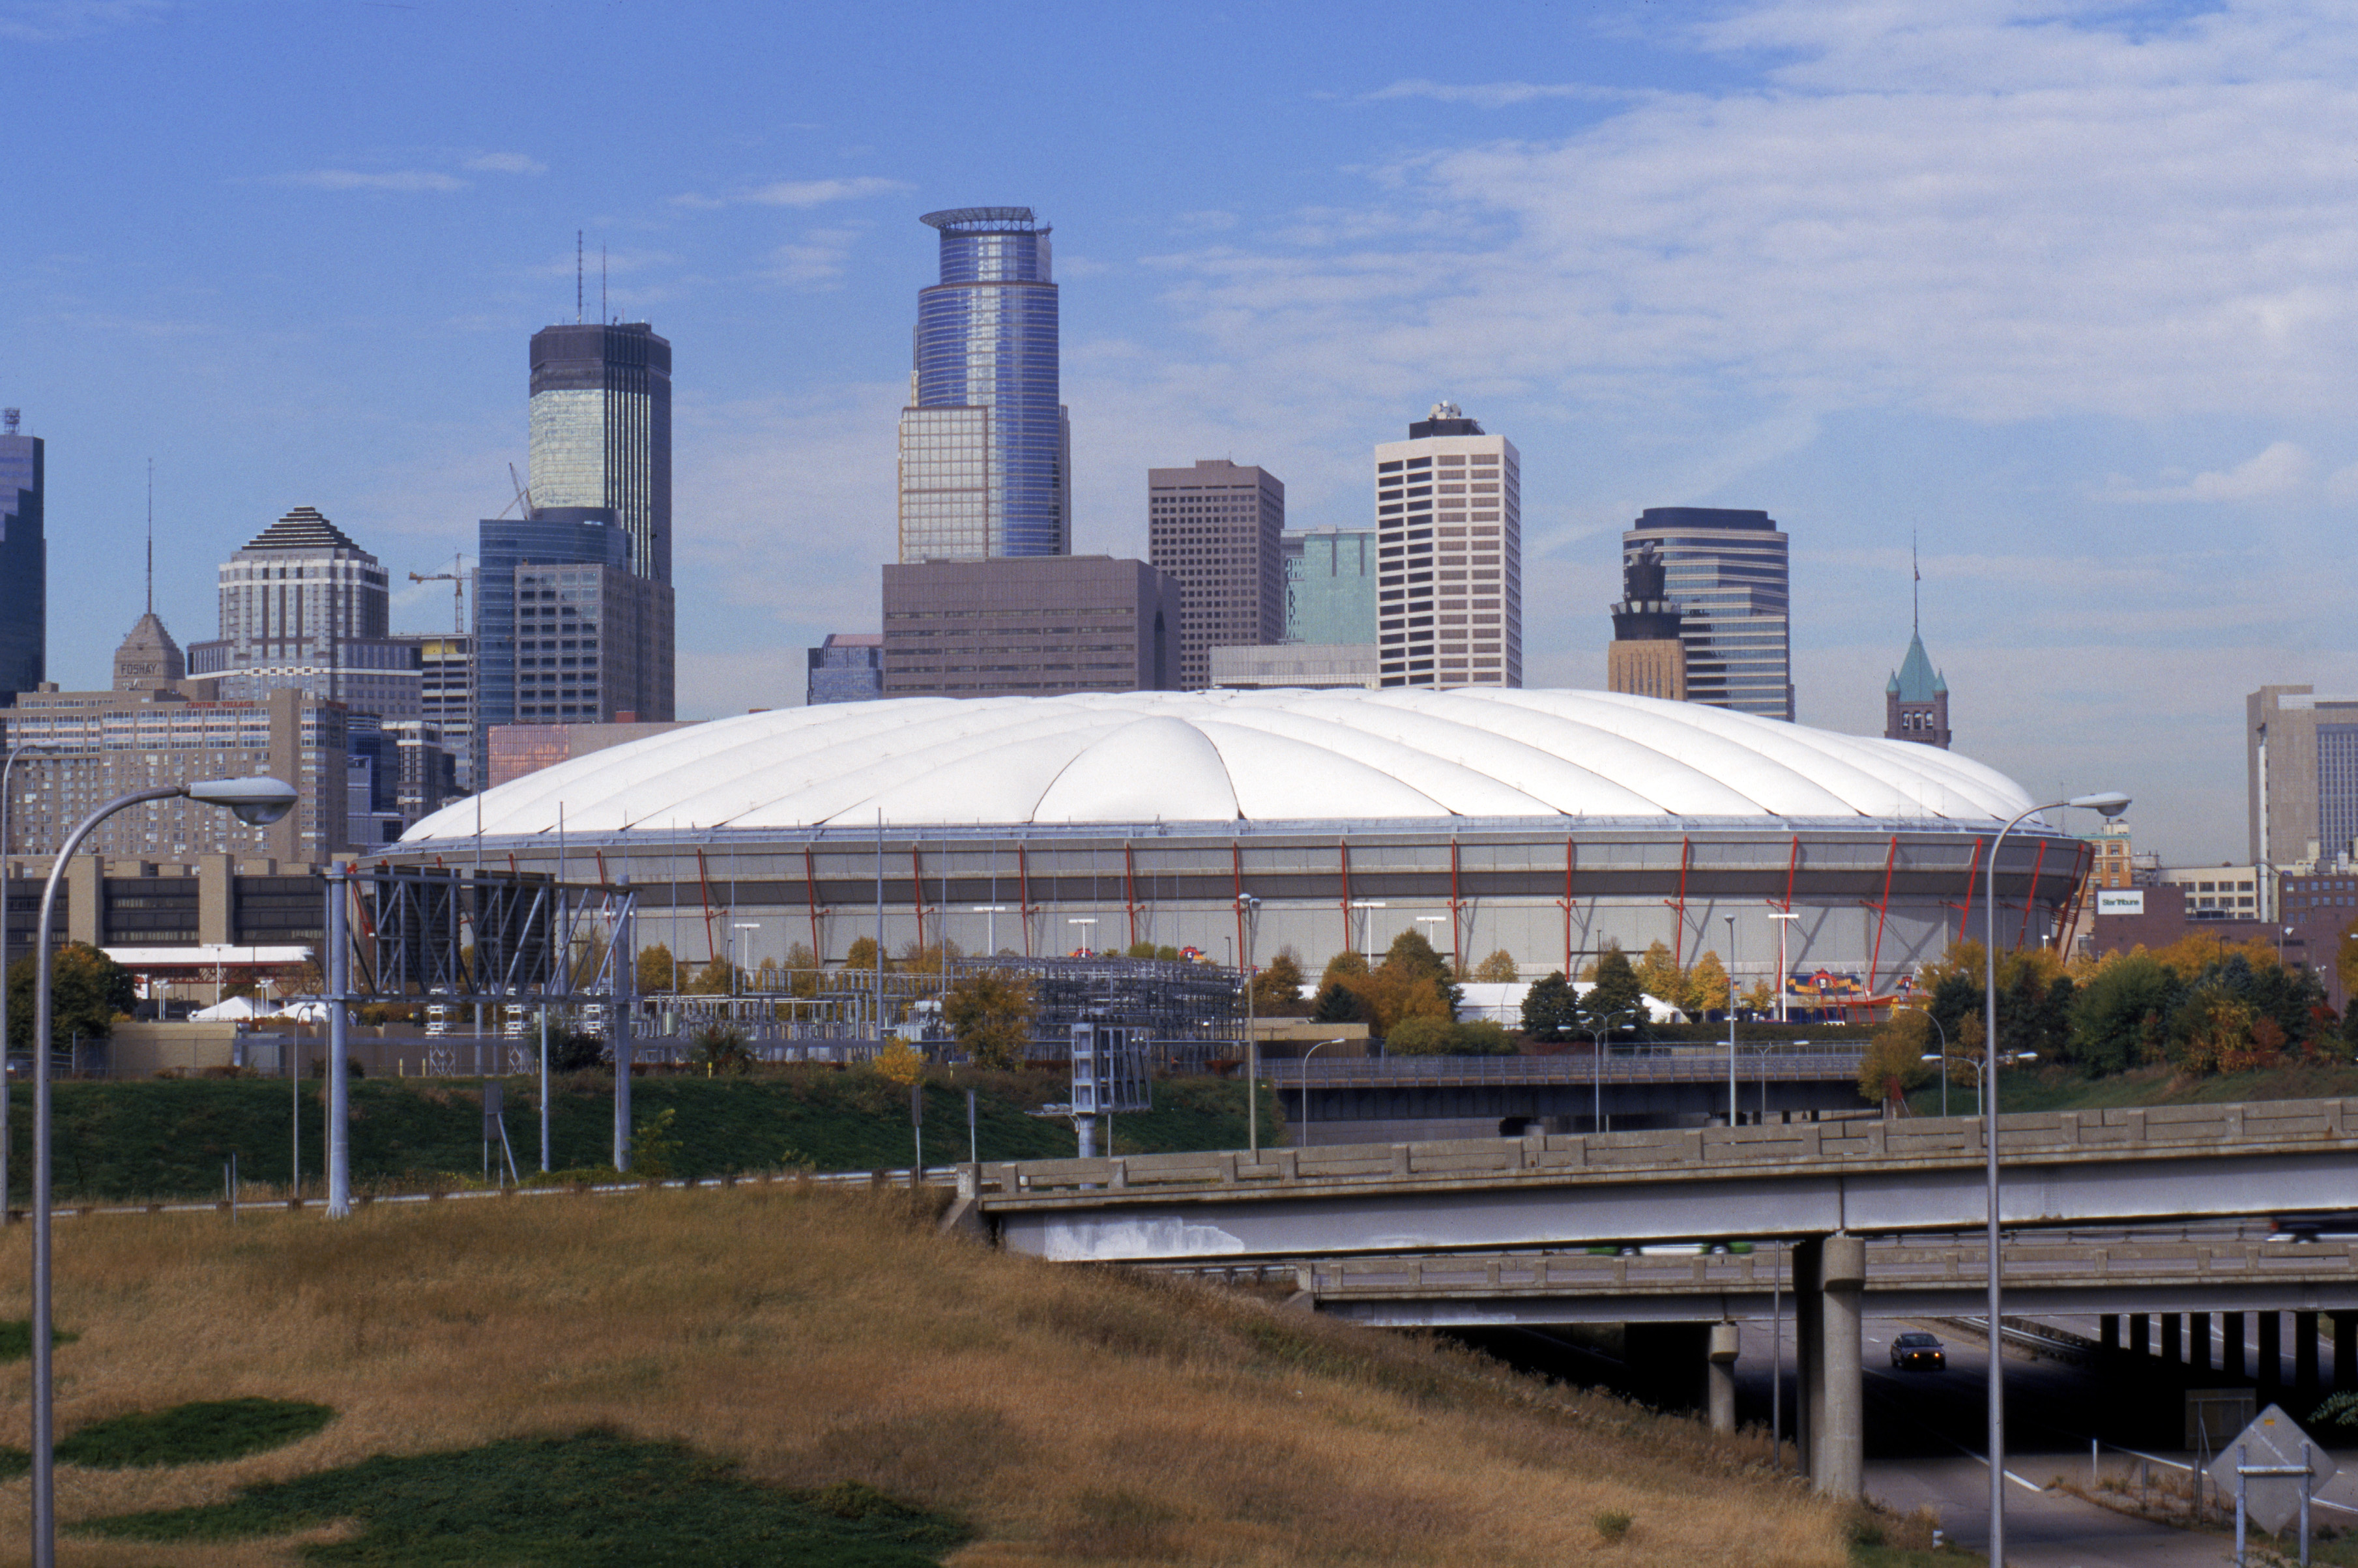 Often referred to simply as the Metrodome, the stadium has been the home of the Minnesota Vikings since it first opened in 1982. Known for its unique fiberglass-domed roof, the Metrodome provides a climate-controlled indoor venue to escape the unpredictable Minnesota weather.